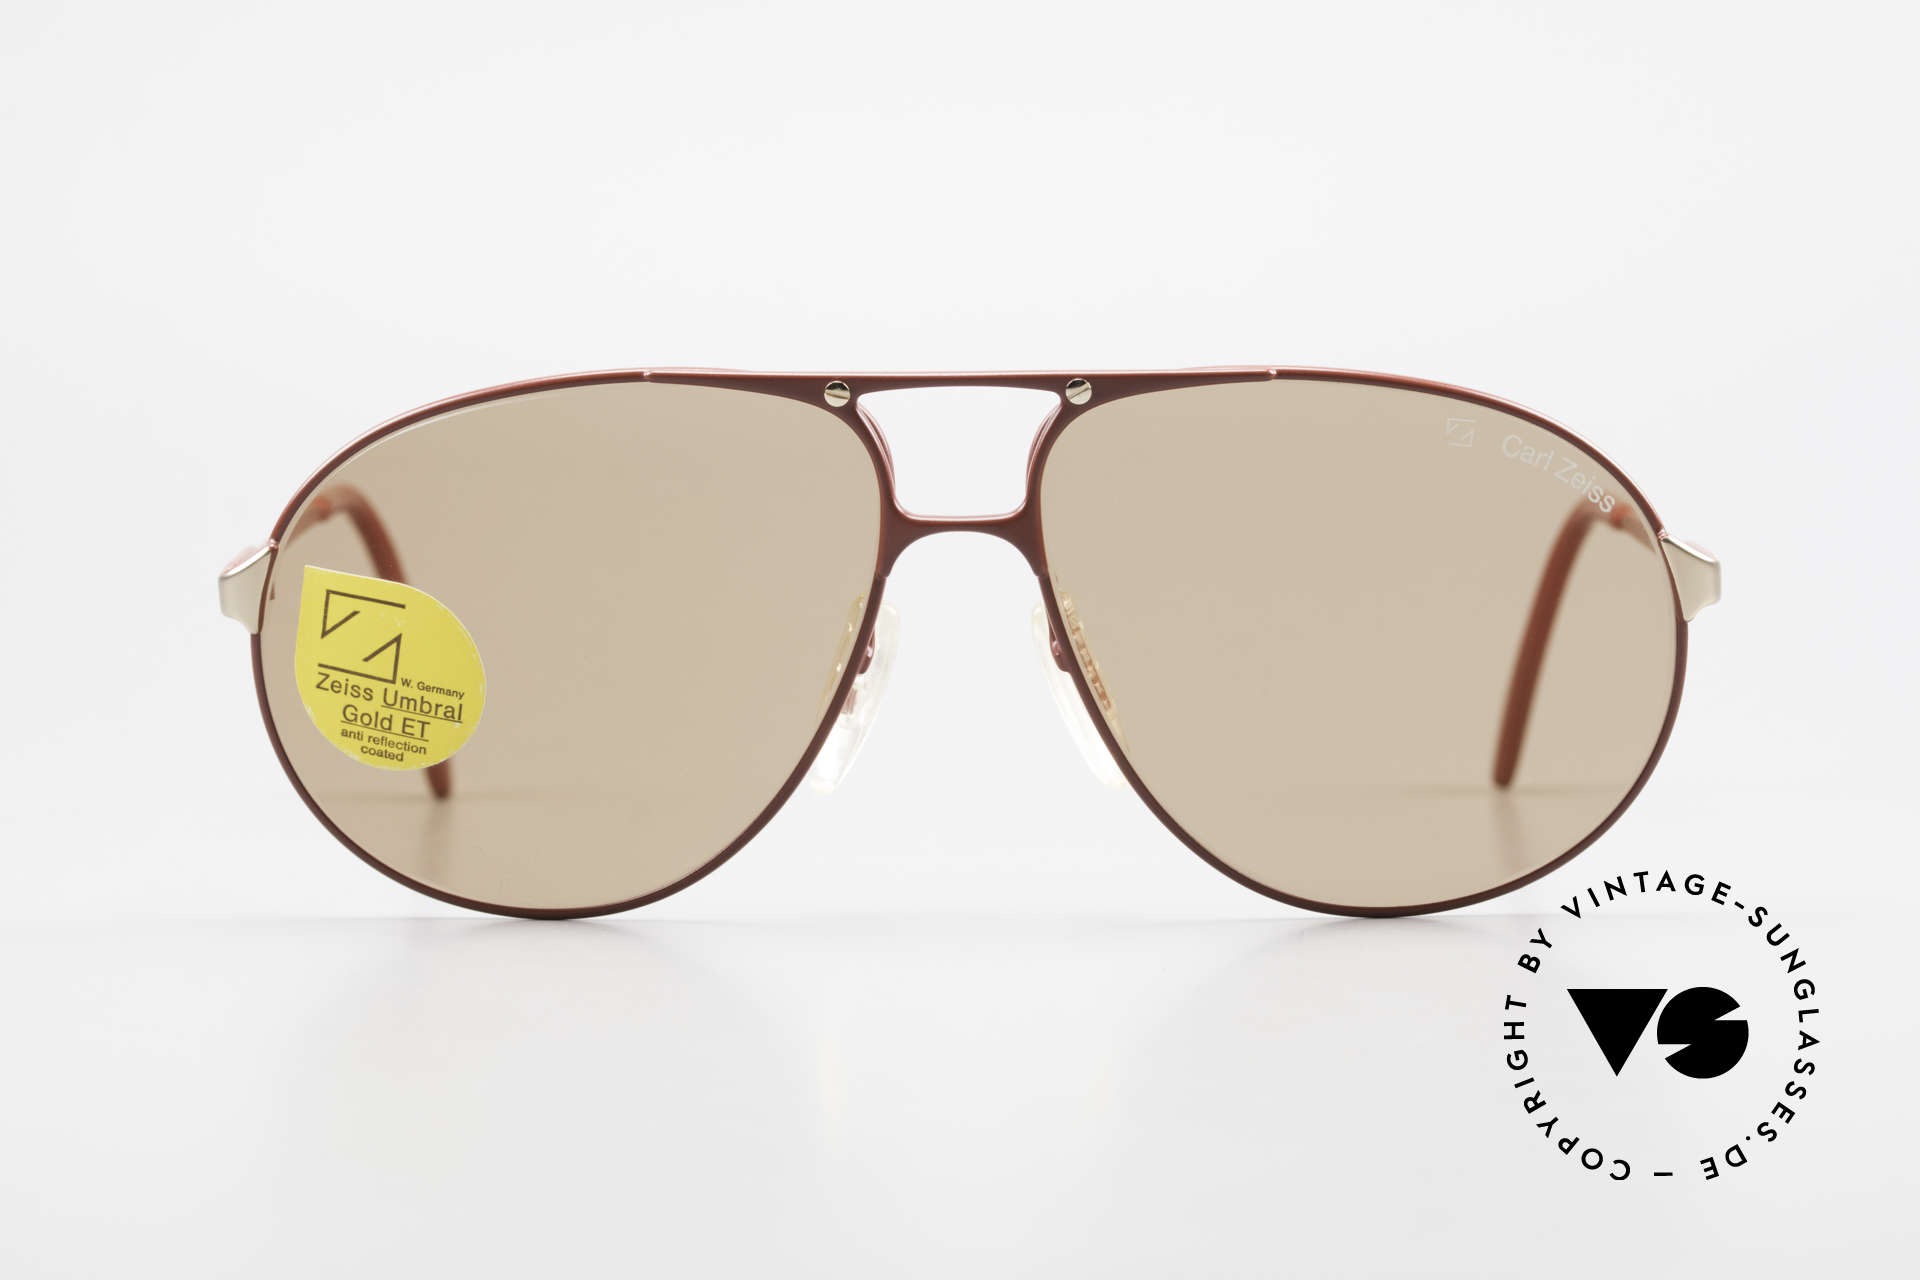 Zeiss 9289 Umbral Quality Mineral Lenses, a real alternative to the ordinary 'aviator design', Made for Men